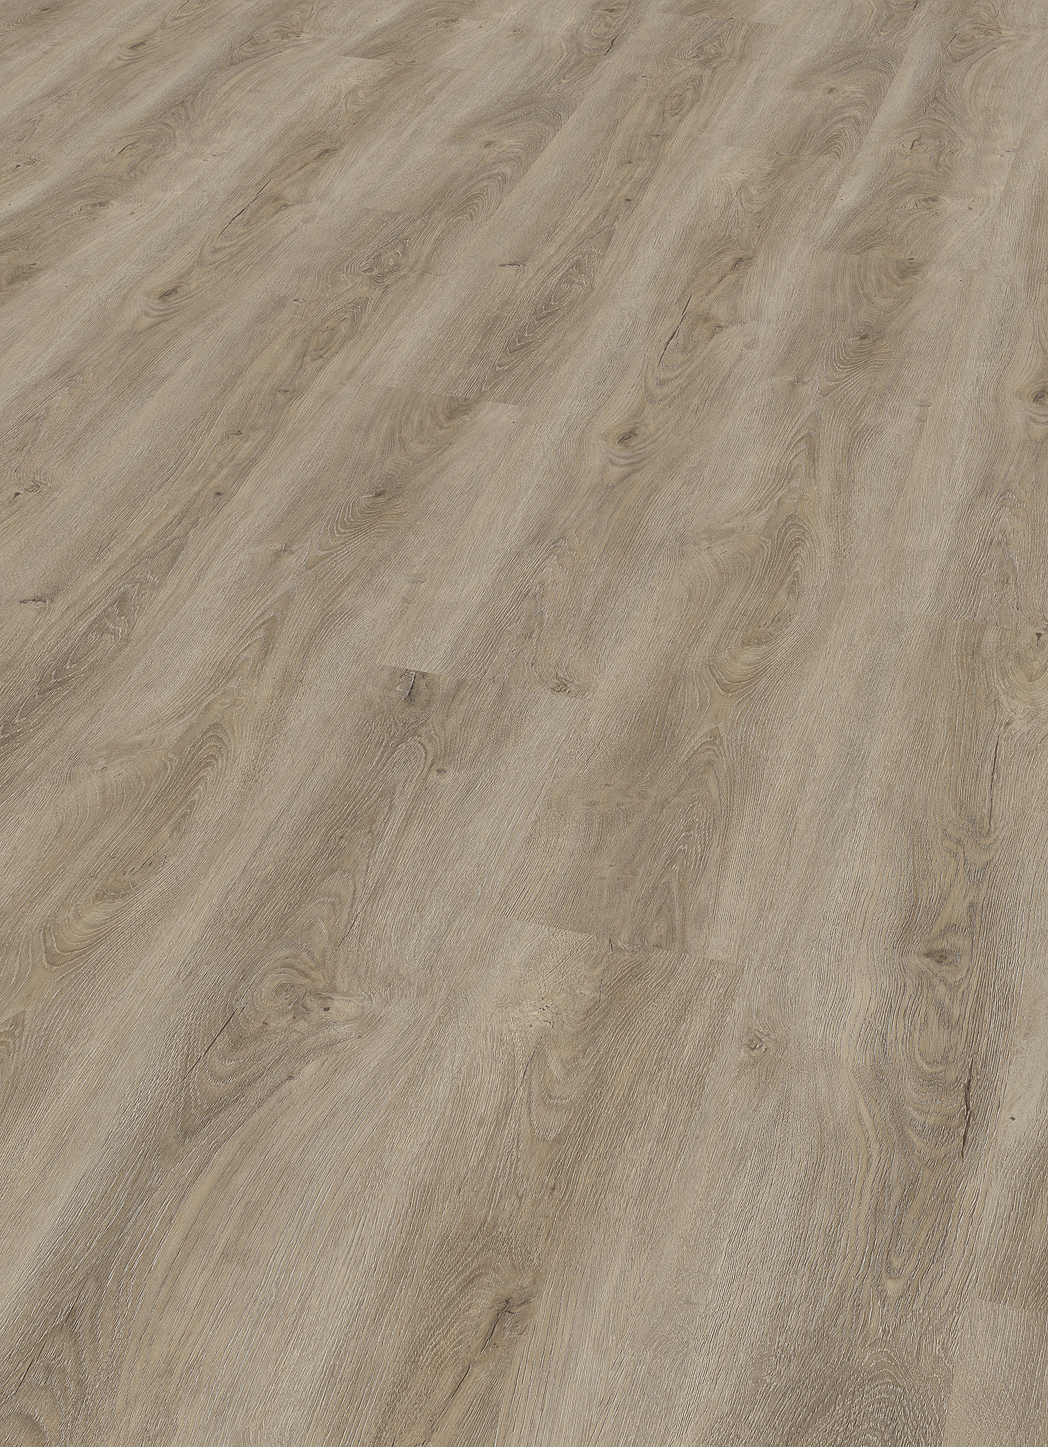 Oak Minsk Grey Beige German Fully Engineered Luxury